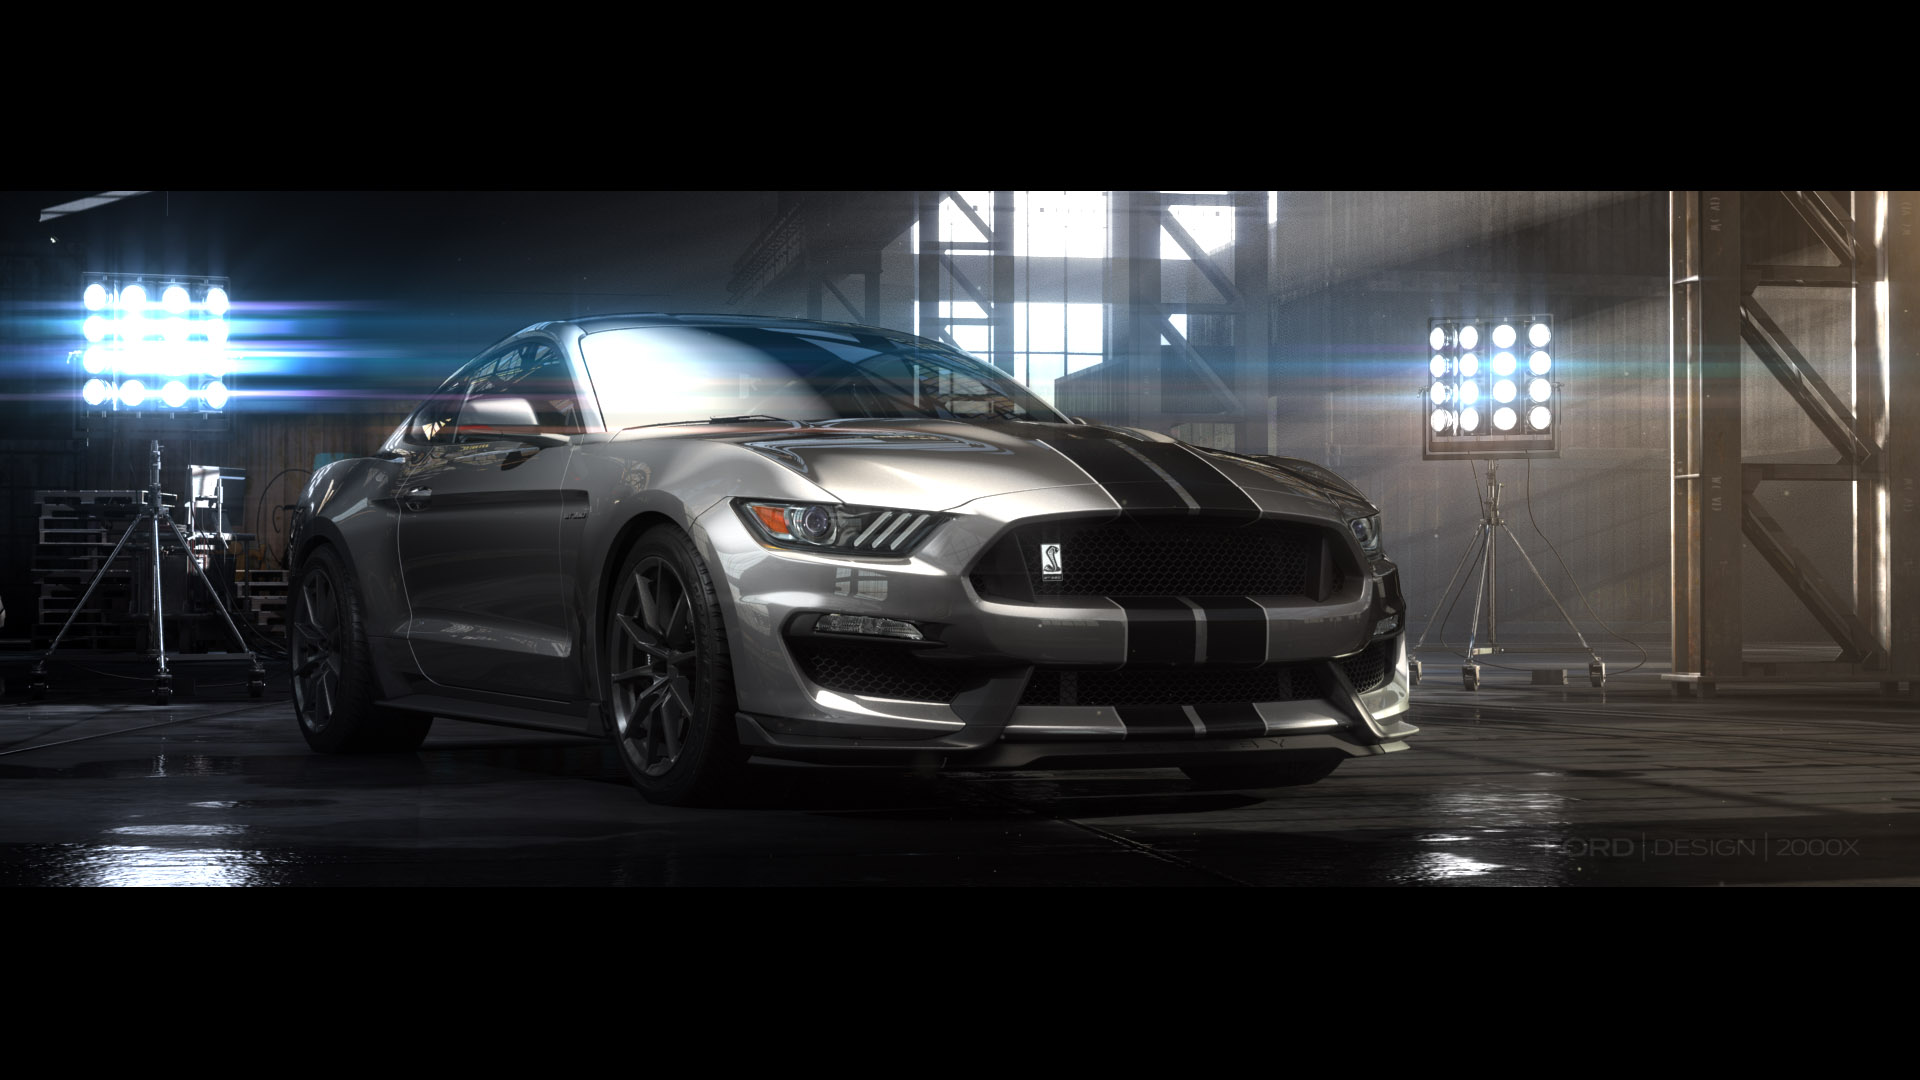 1920x1080 - Shelby Mustang GT 350 Wallpapers 4